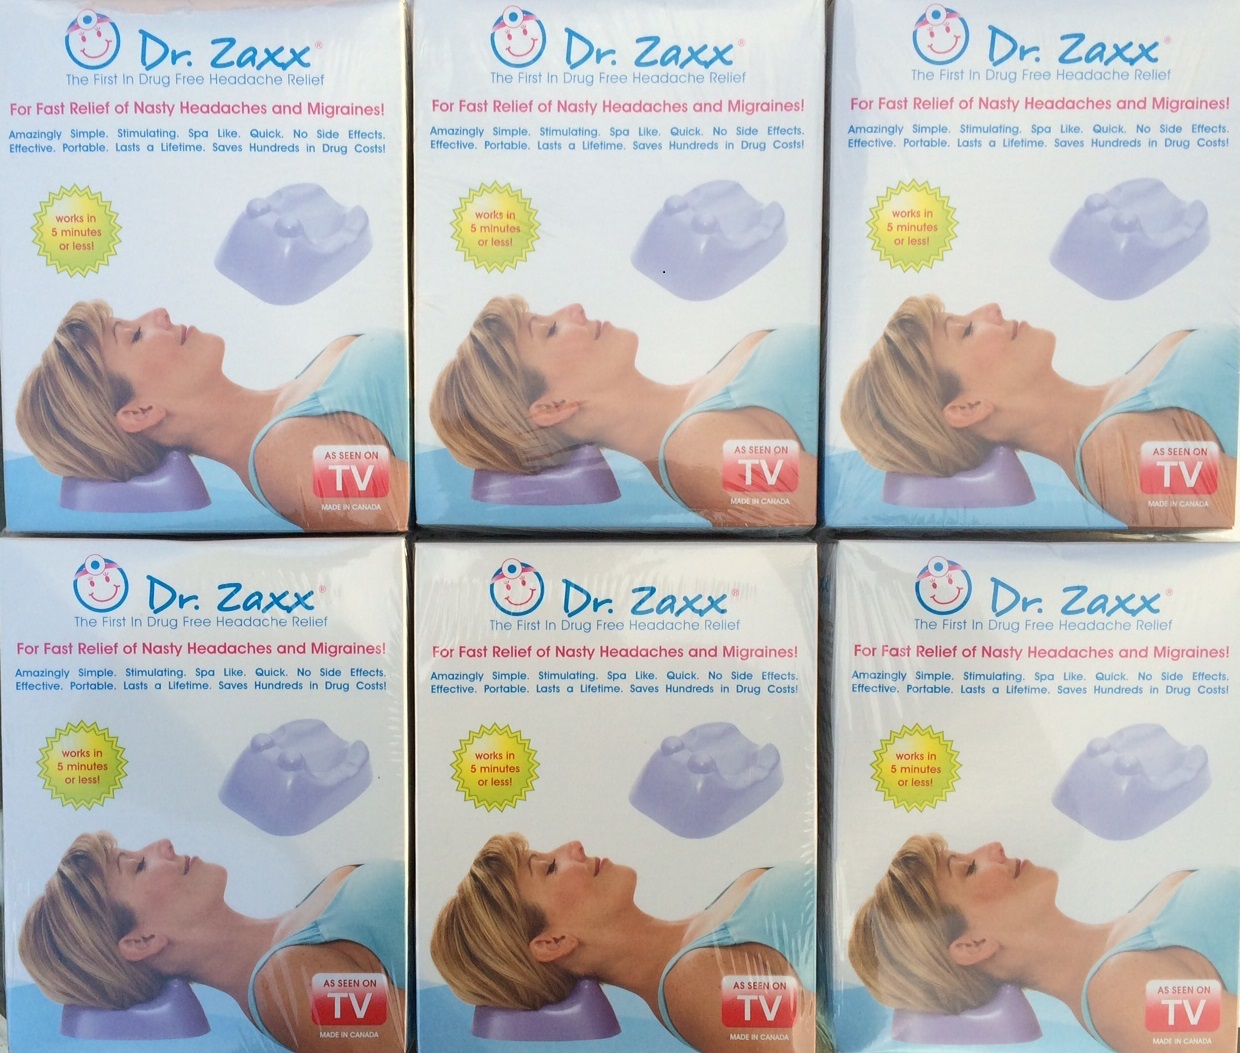 6 individual dr. zaxx headache relief accu-pressure devices